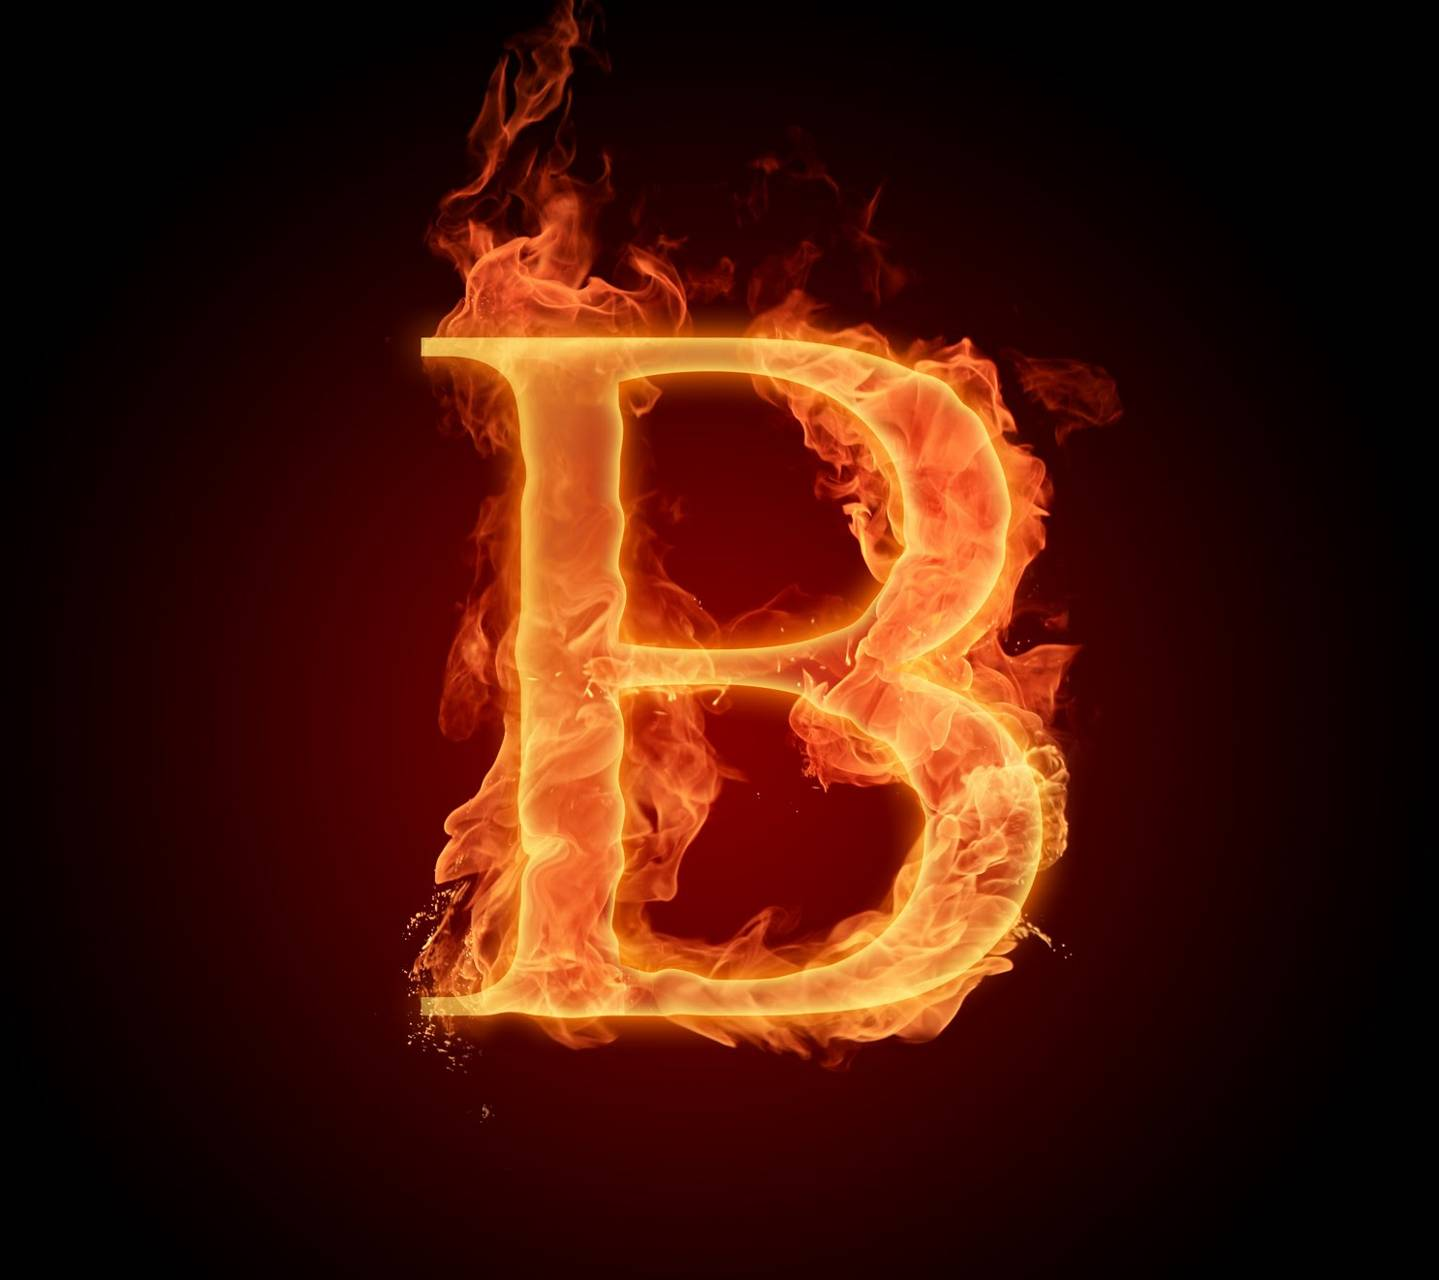 H Letter In Fire Hd Letter B In Fire Hd wa...